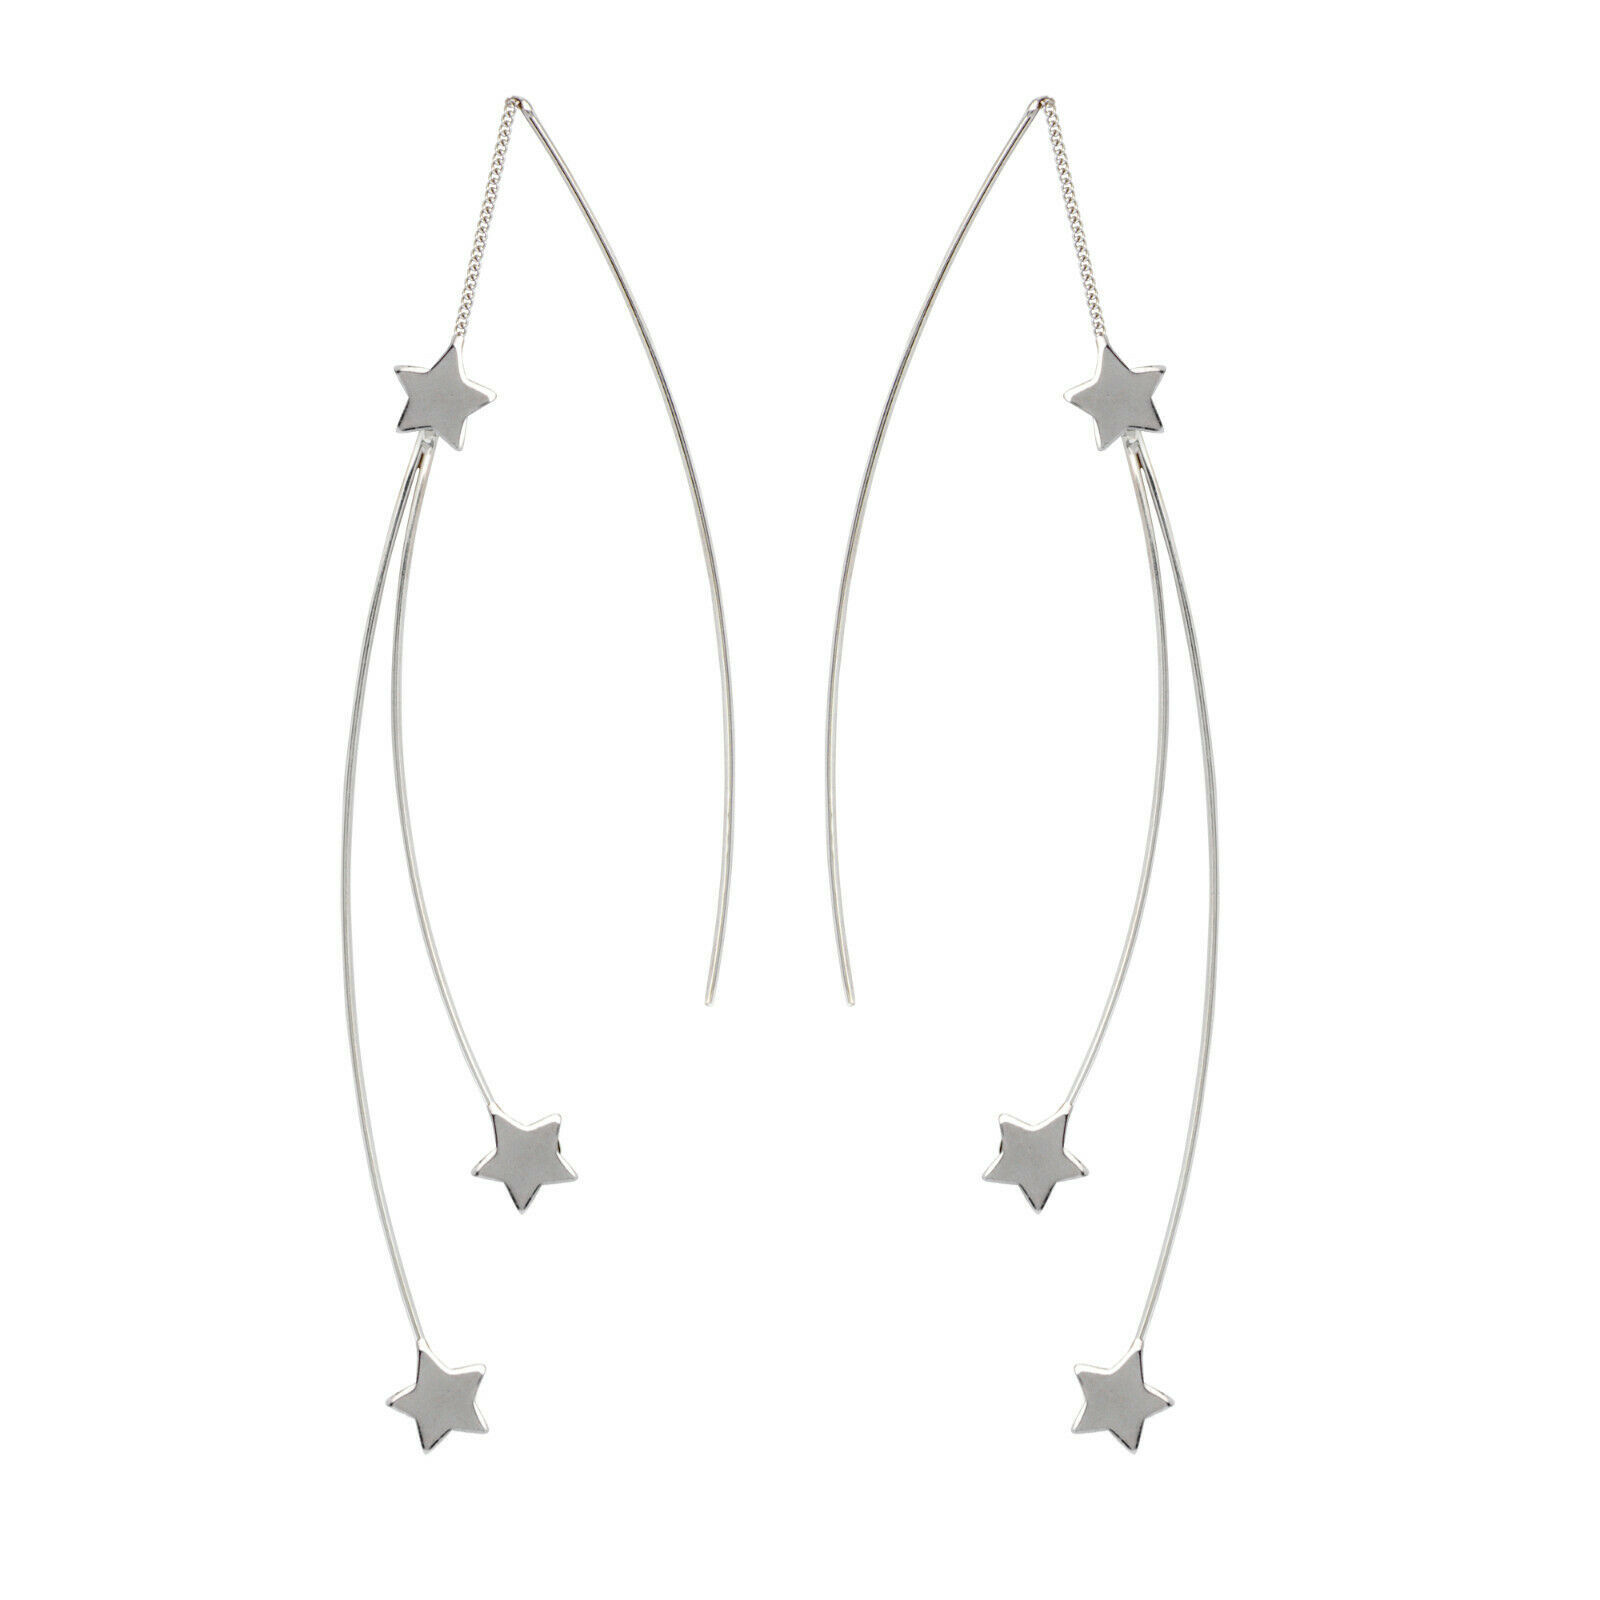 Primary image for 925 Sterling Silver Fancy Double Star Threader Fashion Earrings